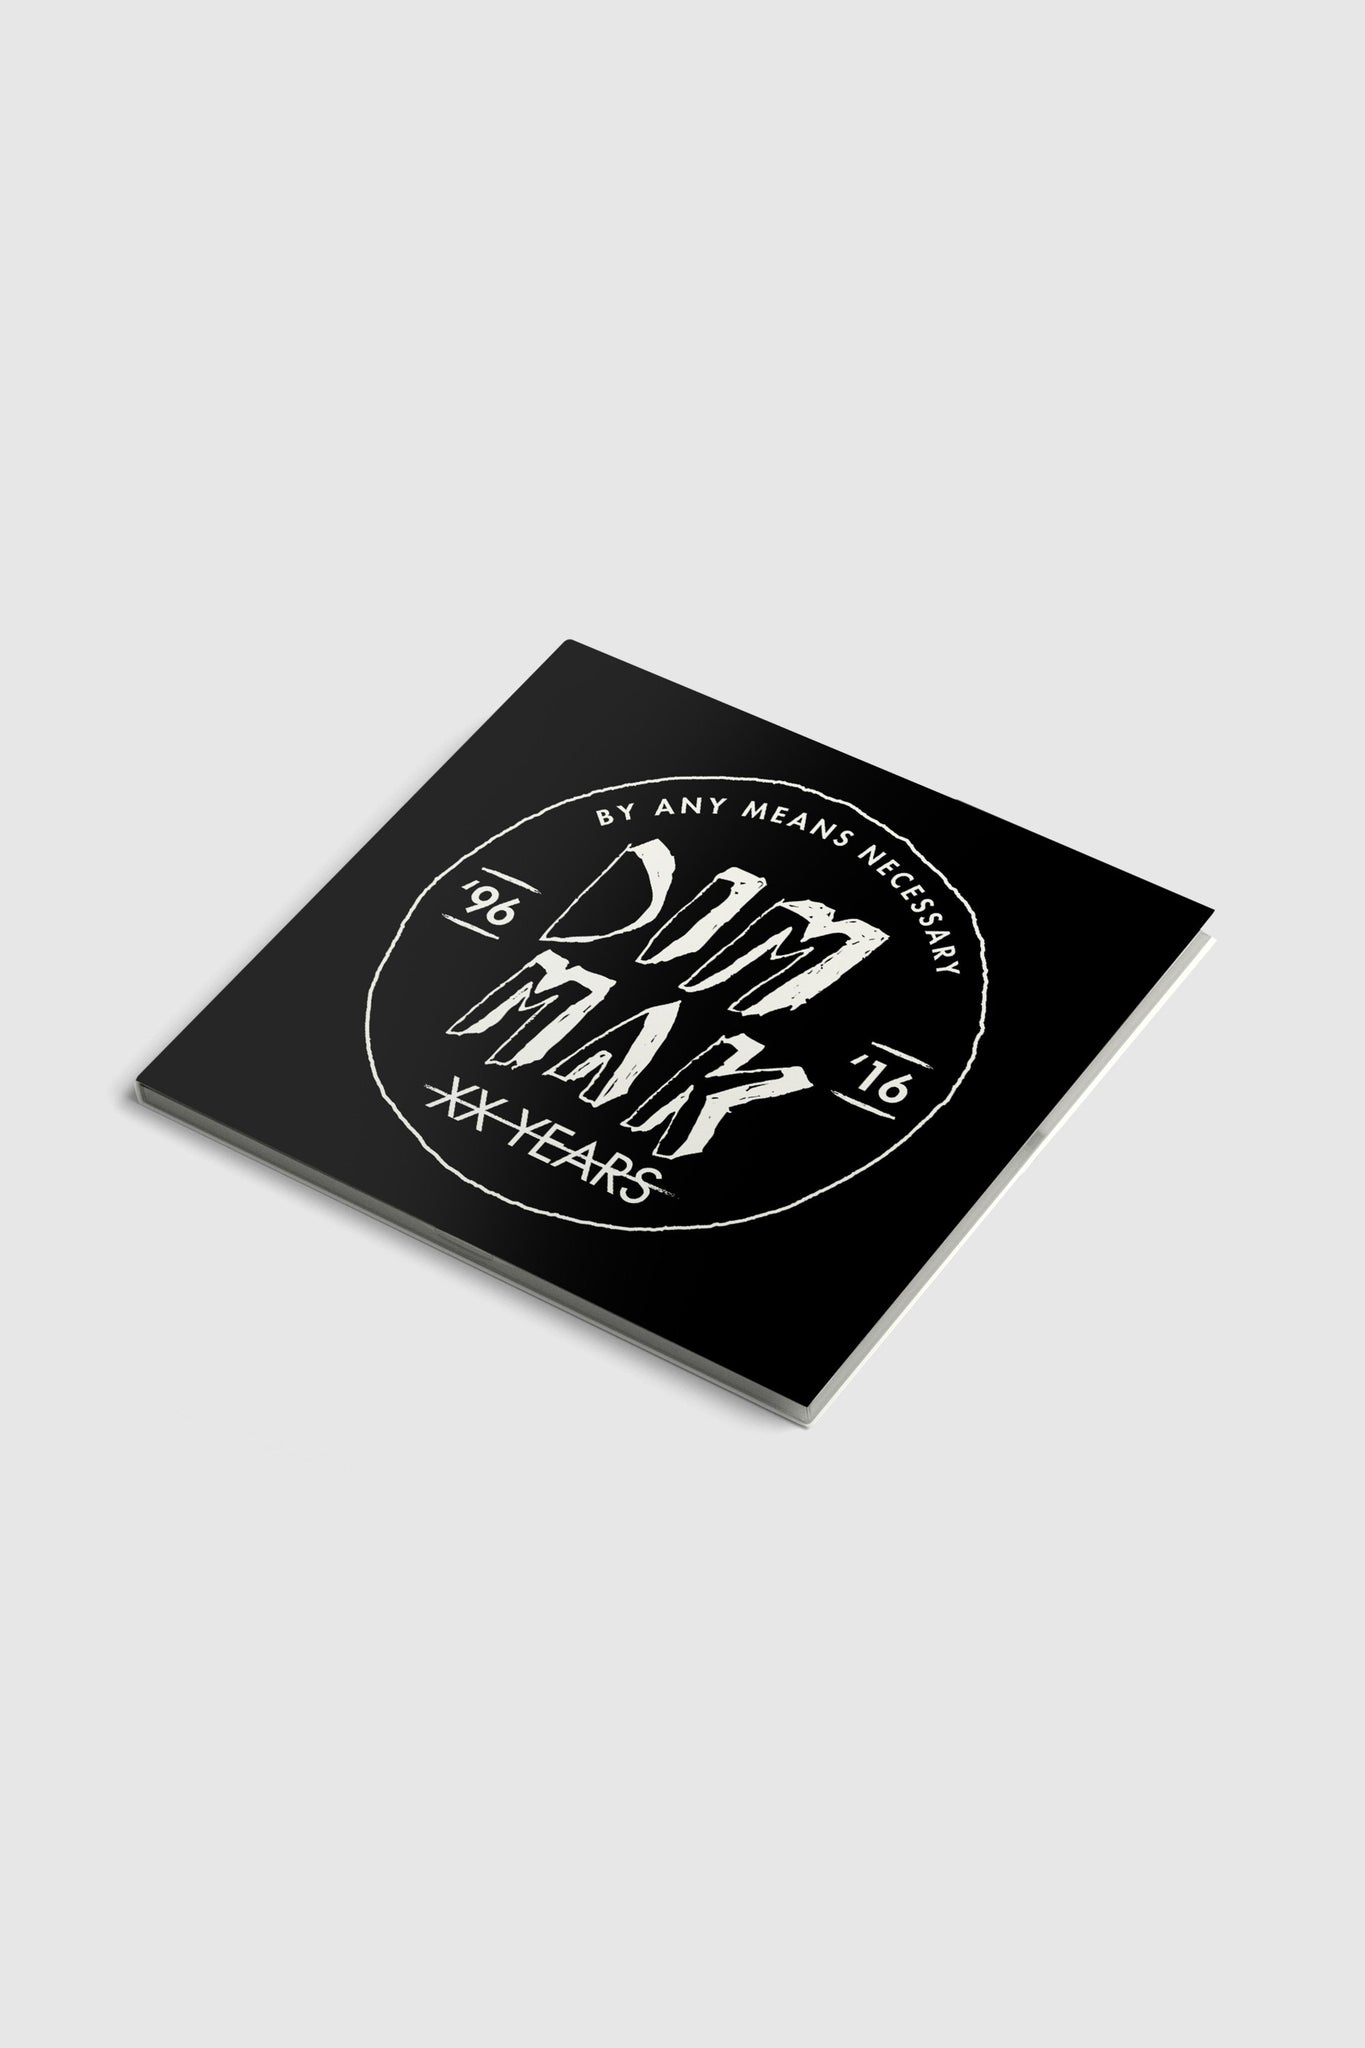 Dim Mak 20th Anniversary Limited CD